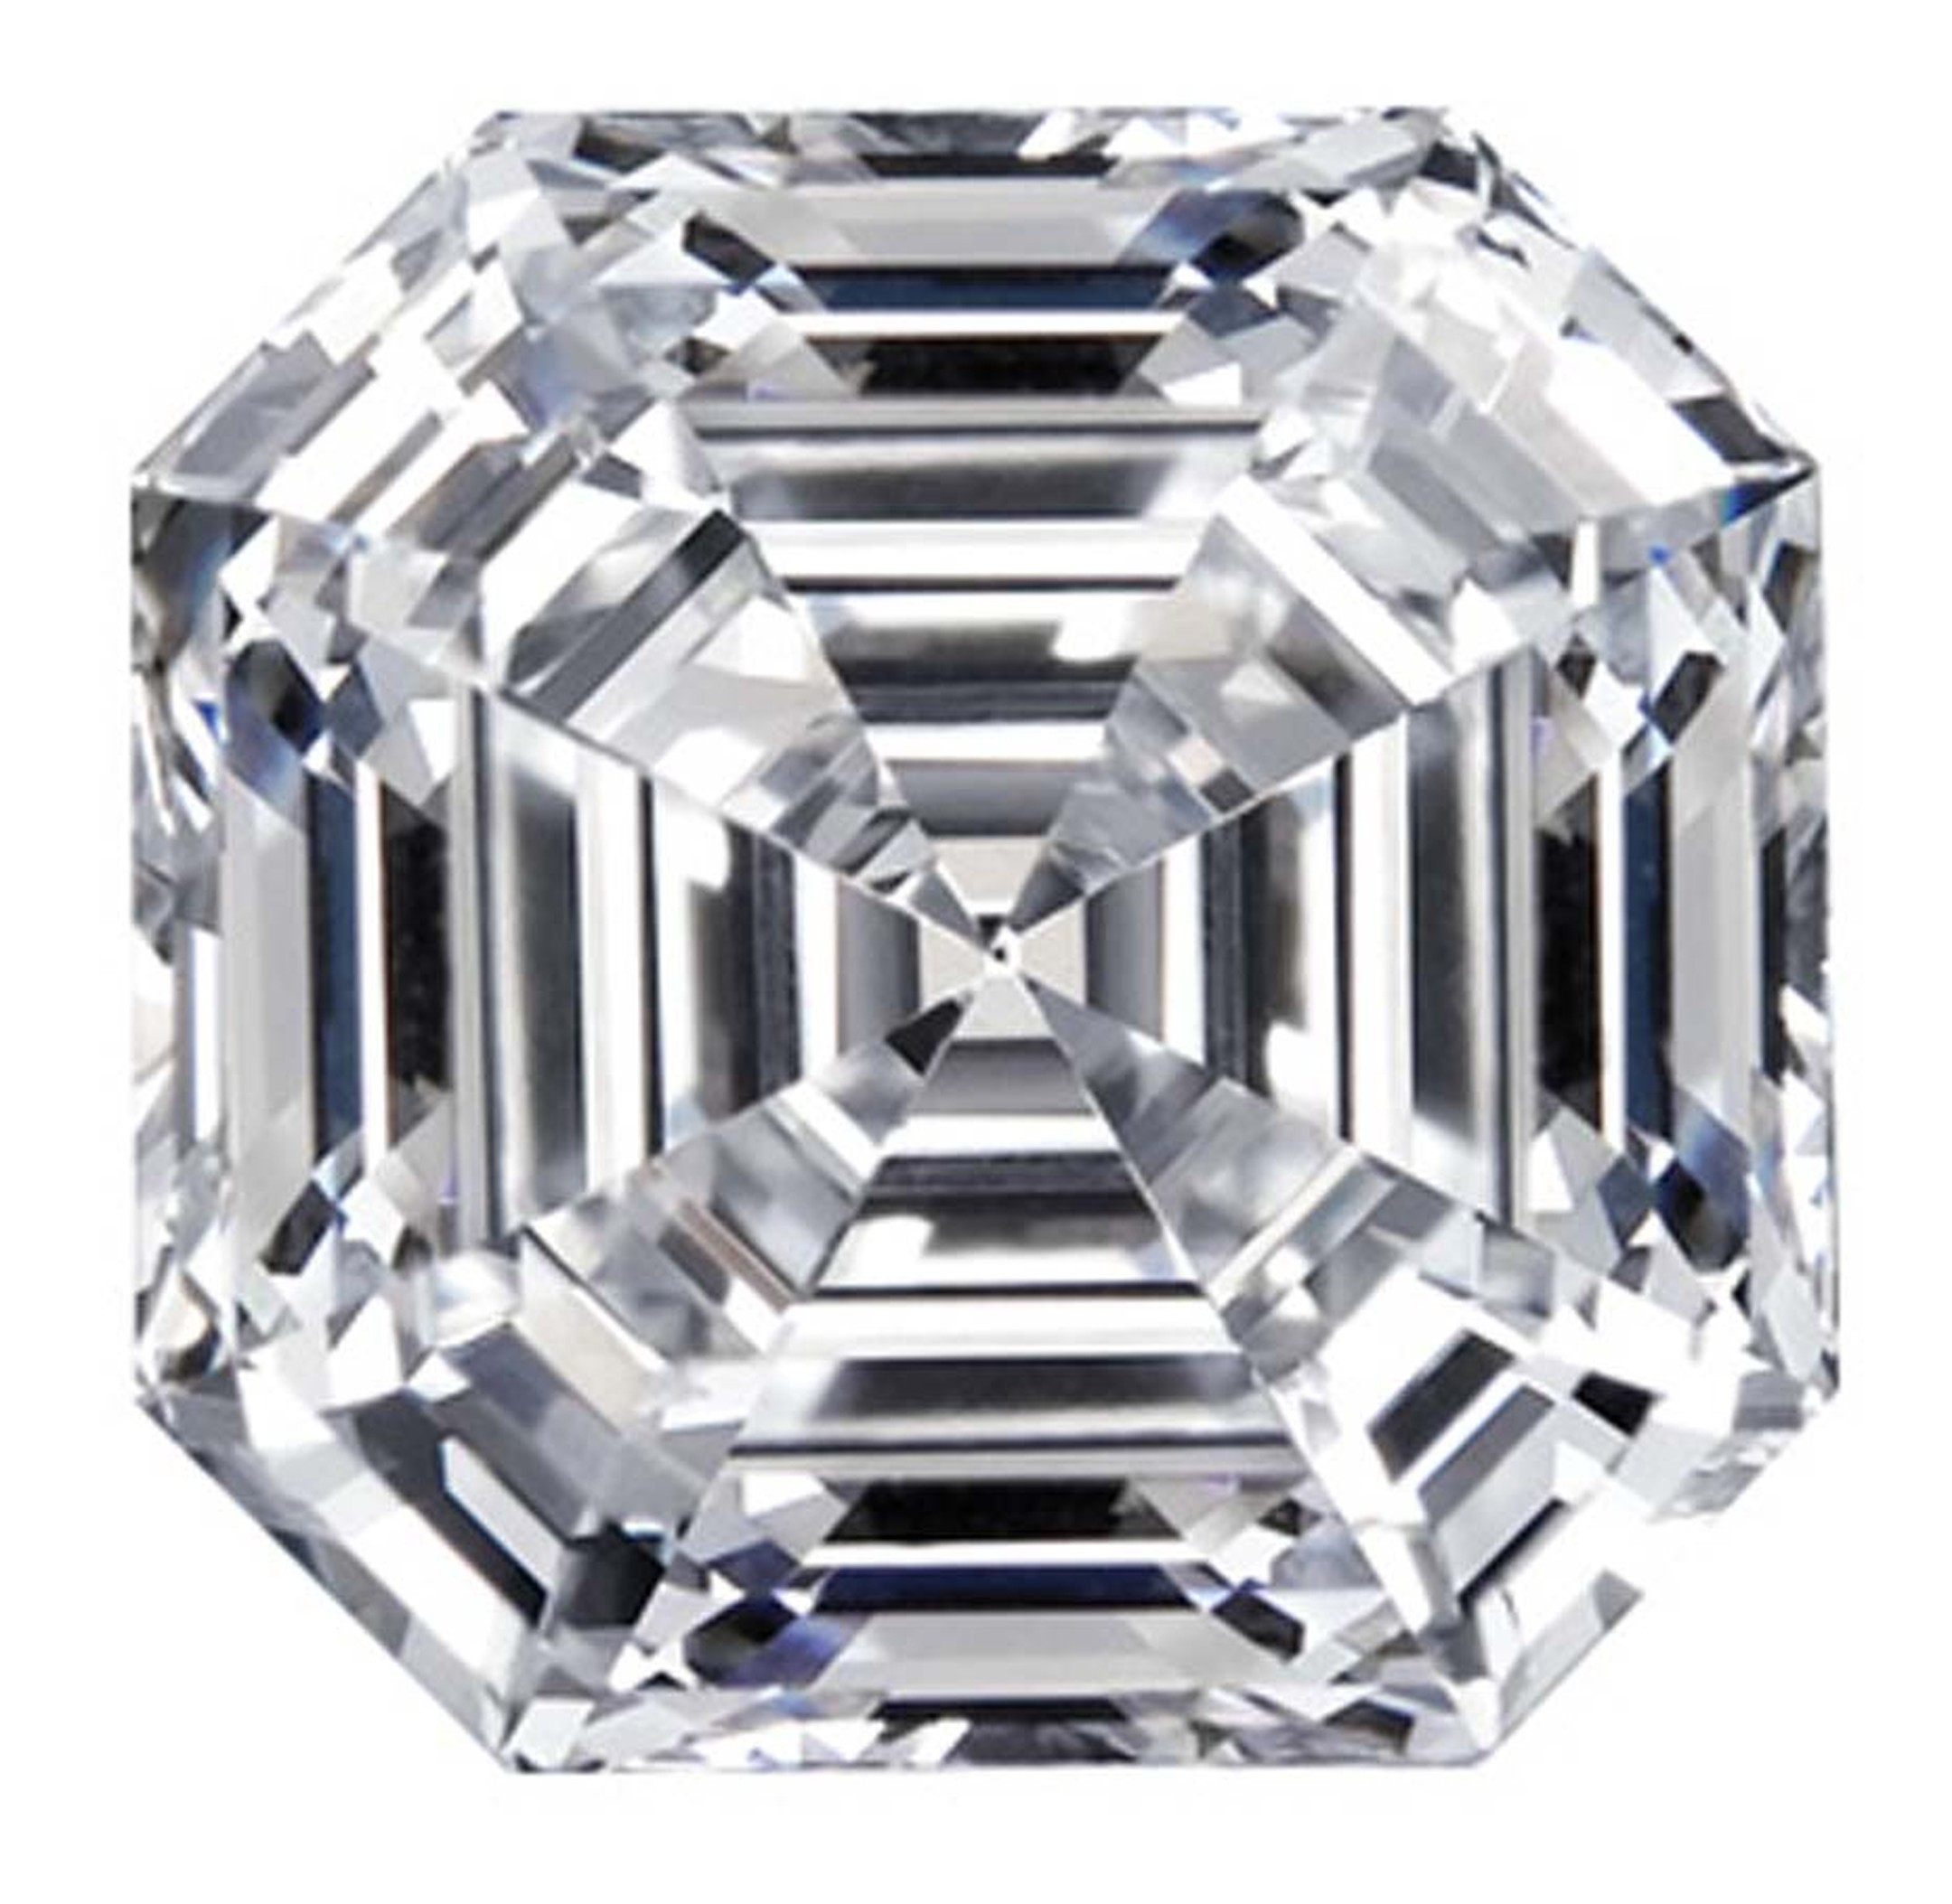 Joseph Asscher's great-grandsons Edward and Joop created the Royal Asscher cut in 2001. It has 74 facets, which are all precisely measured to ensure a perfectly symmetrical cut.